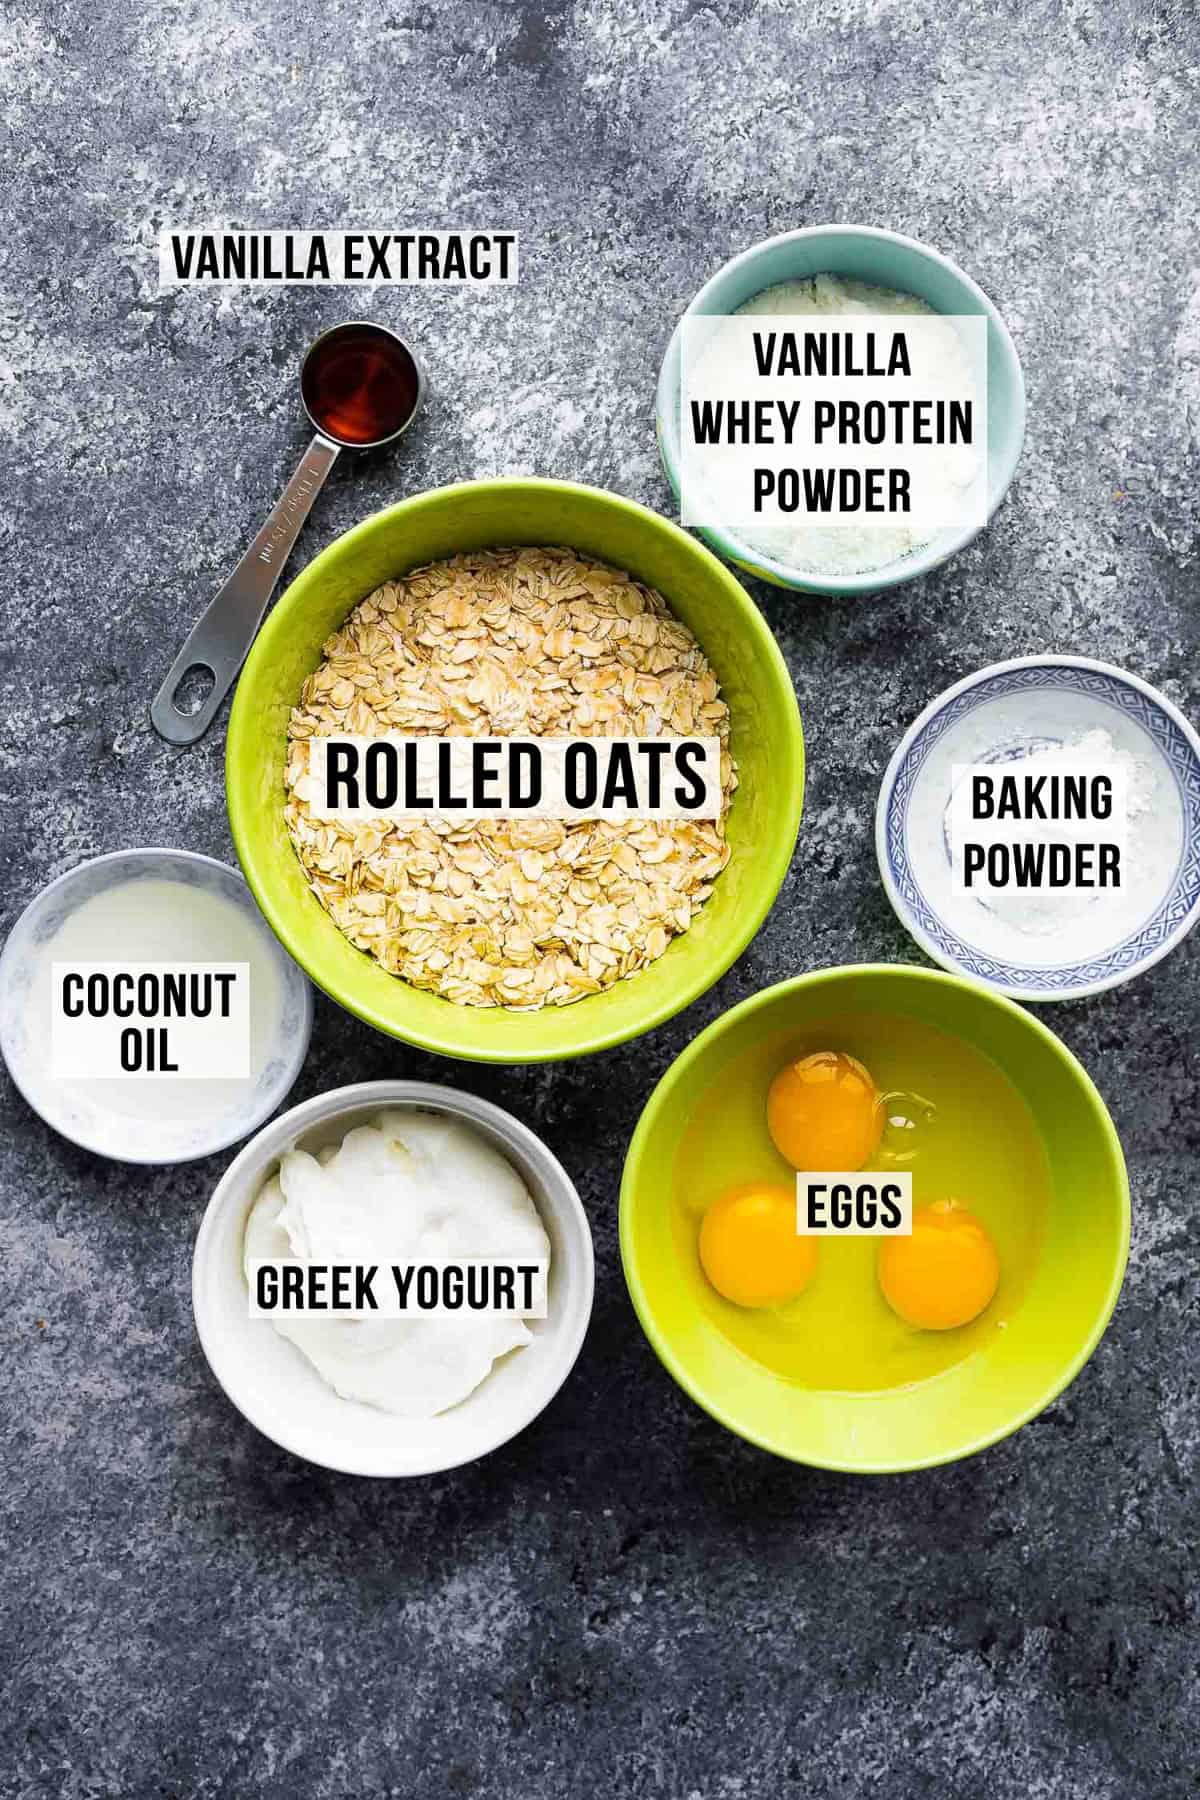 Ingredients for making protein pancakes (with label)